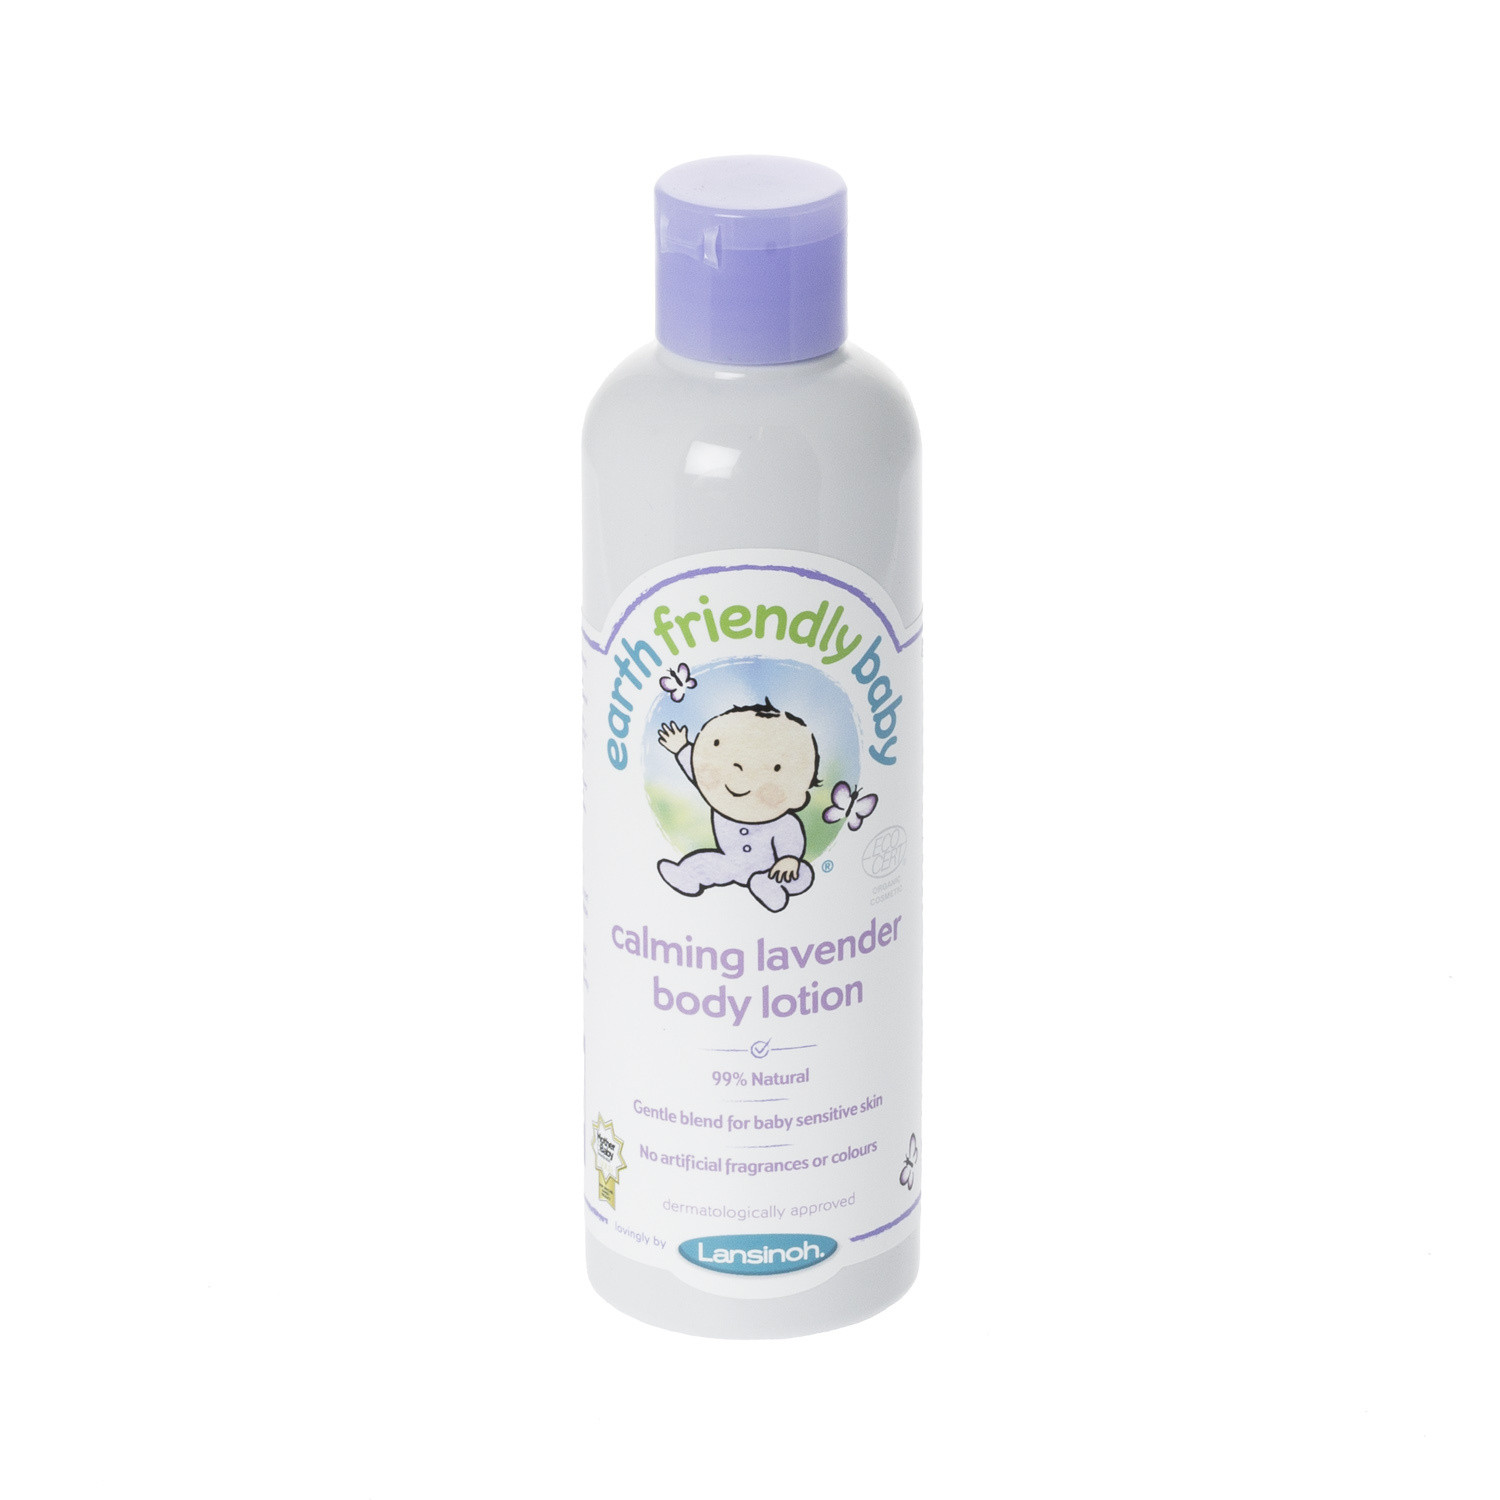 Earth Friendly Calming Lavender Body Lotion